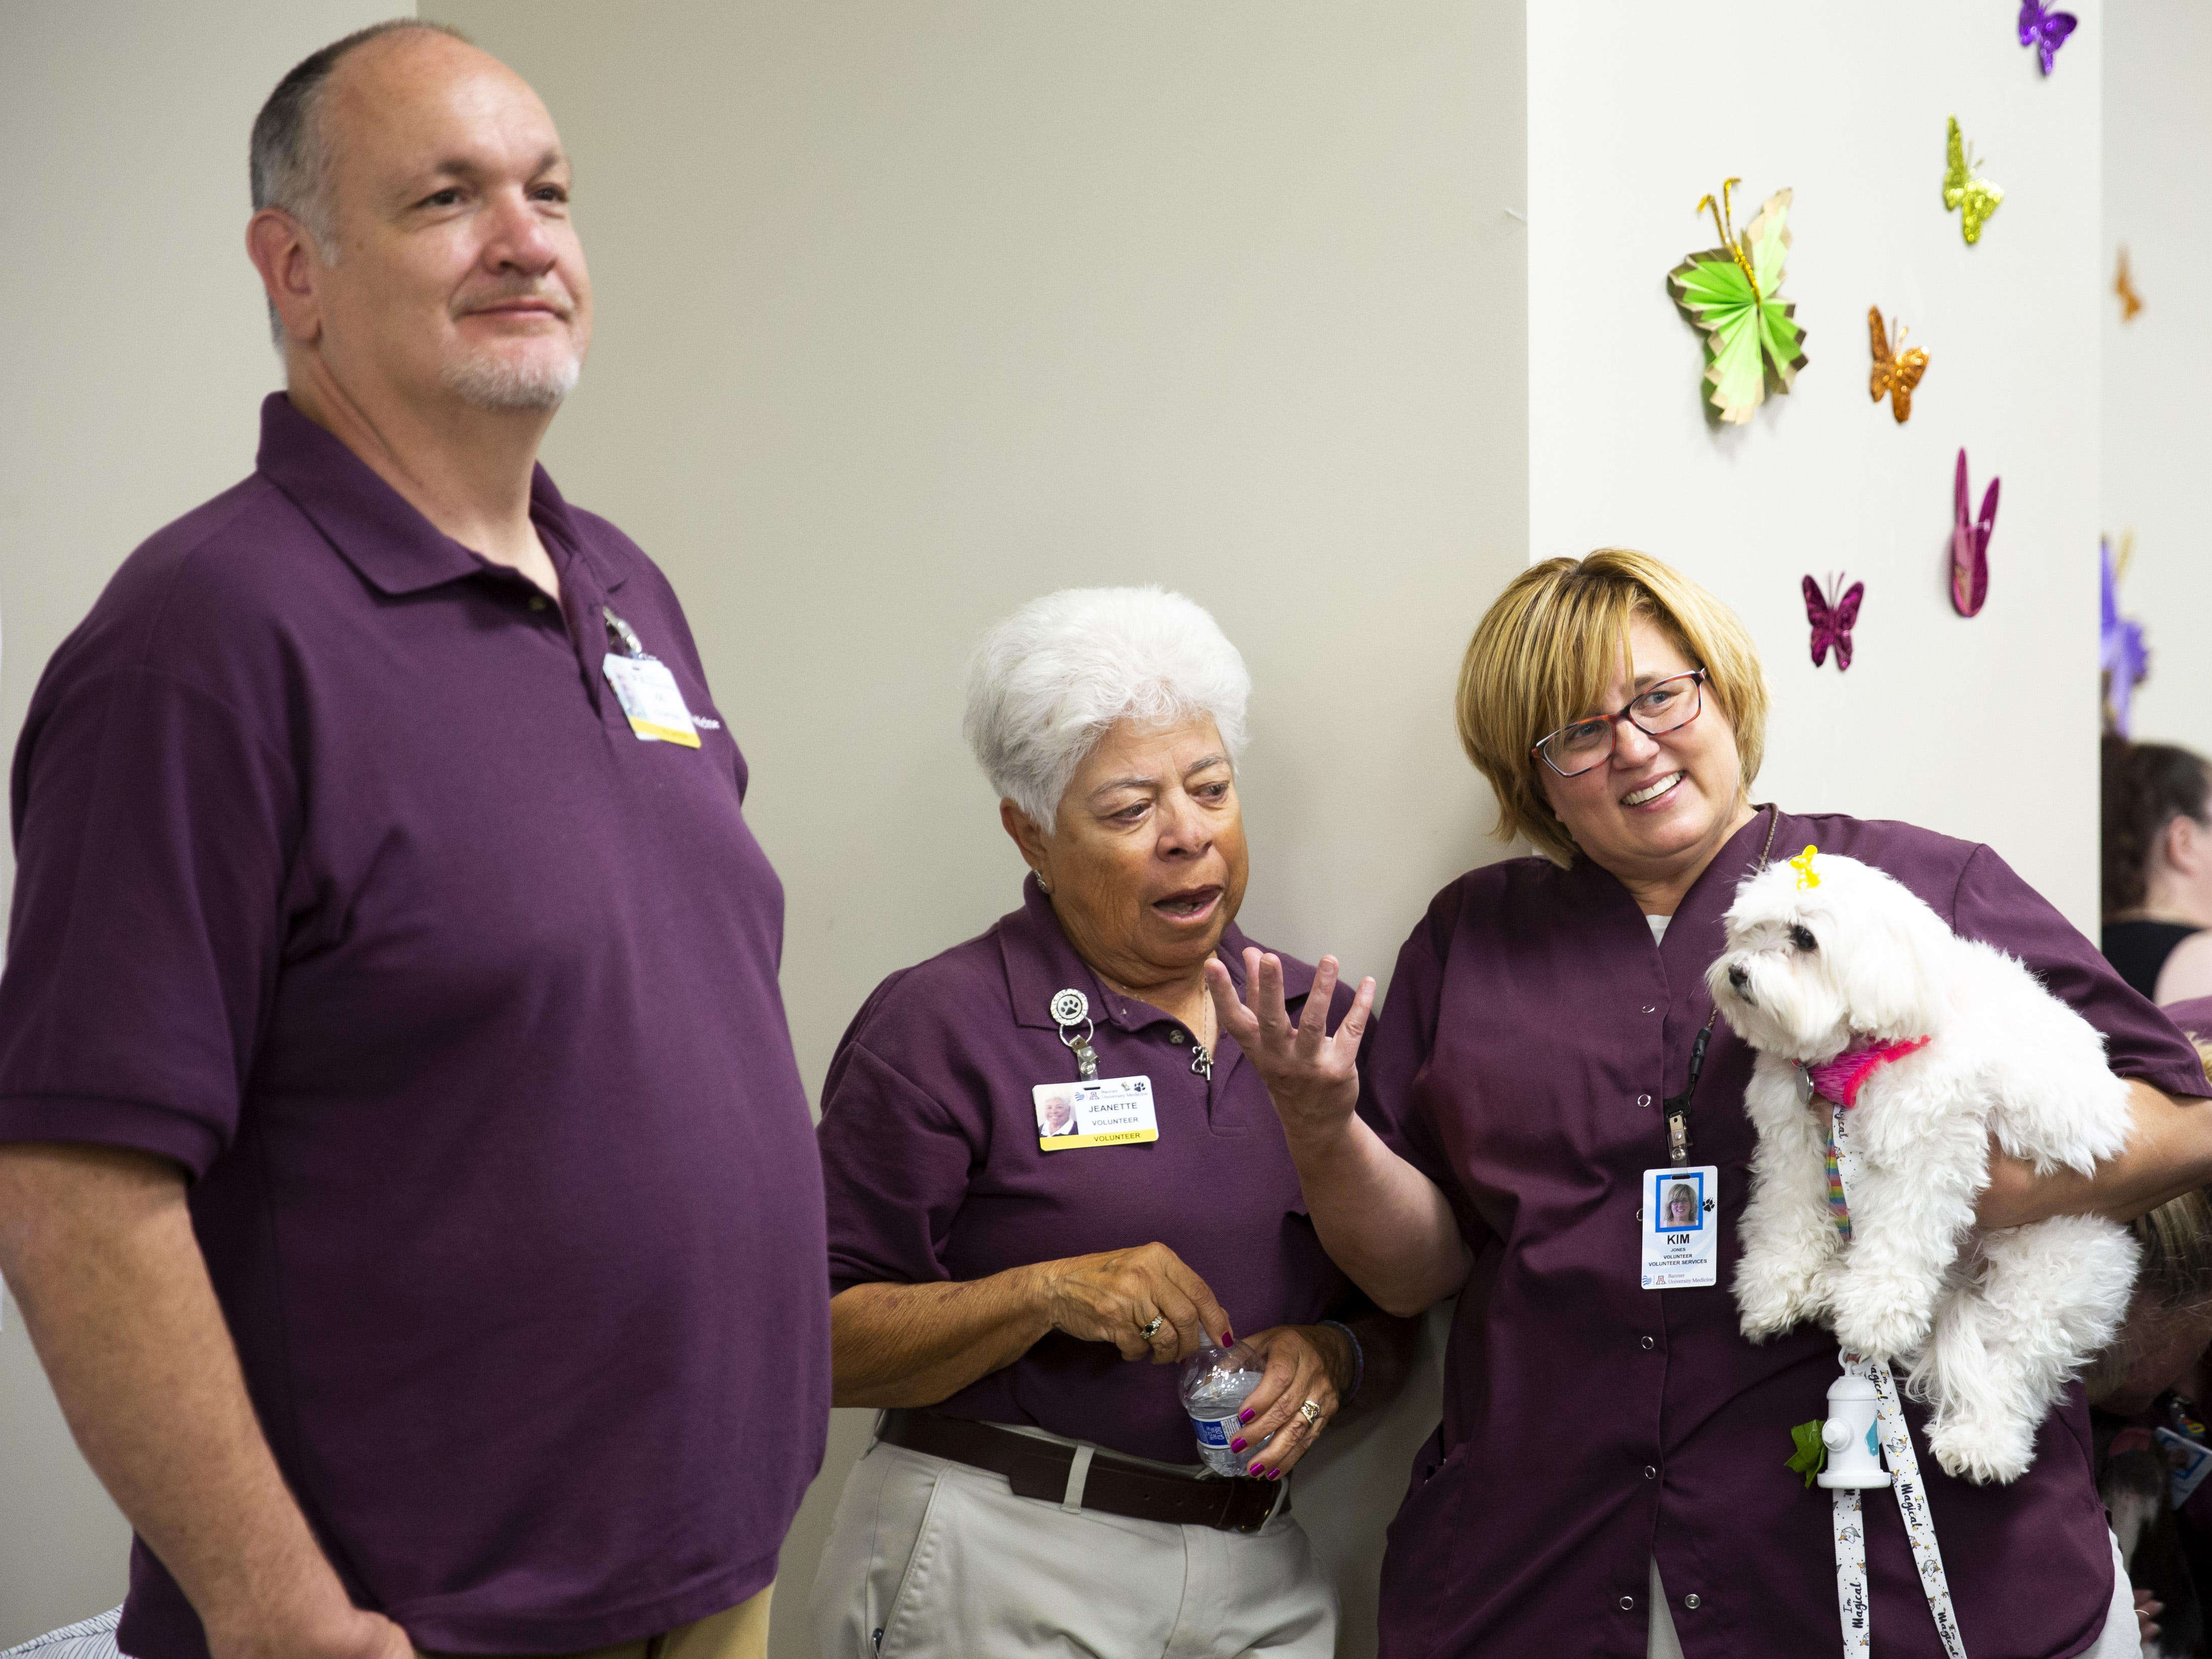 From left, Joe Jones, Jeanette Sinohui and Kim Jones talk together at the Preemie NICU Reunion at Banner University Medical Center on April 13, 2019. The three are in charge of some of the dogs that came to the reunion.